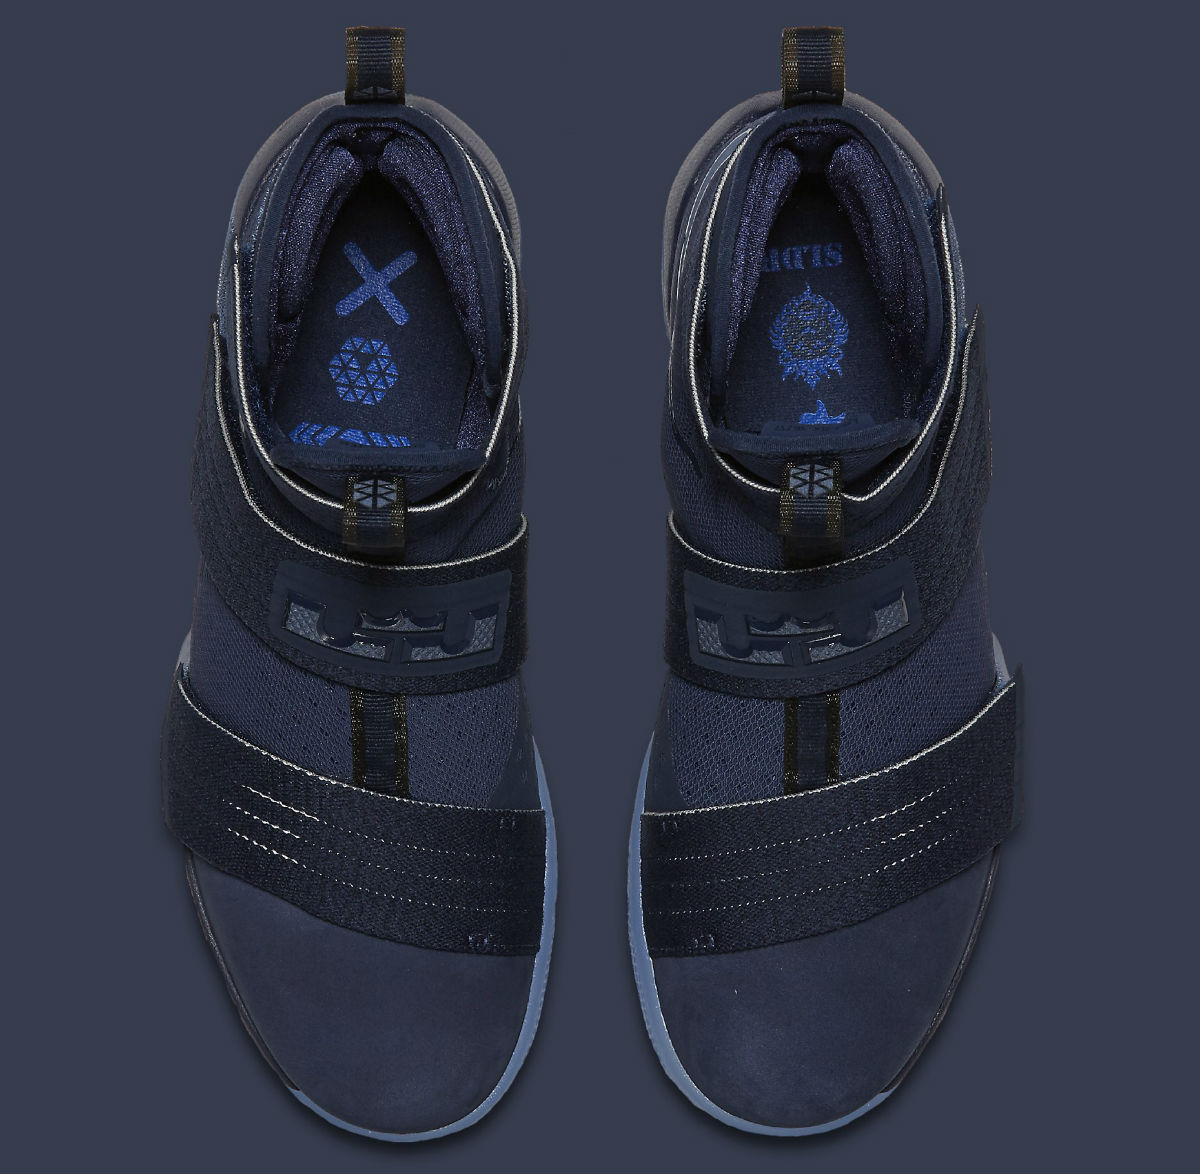 bde8220f3e18 ... game royal quality designnew collectioncheap prices 2e1bd eb63f  spain nike  lebron soldier 10 midnight navy release date top 844378 444 a1c1e 4f69e